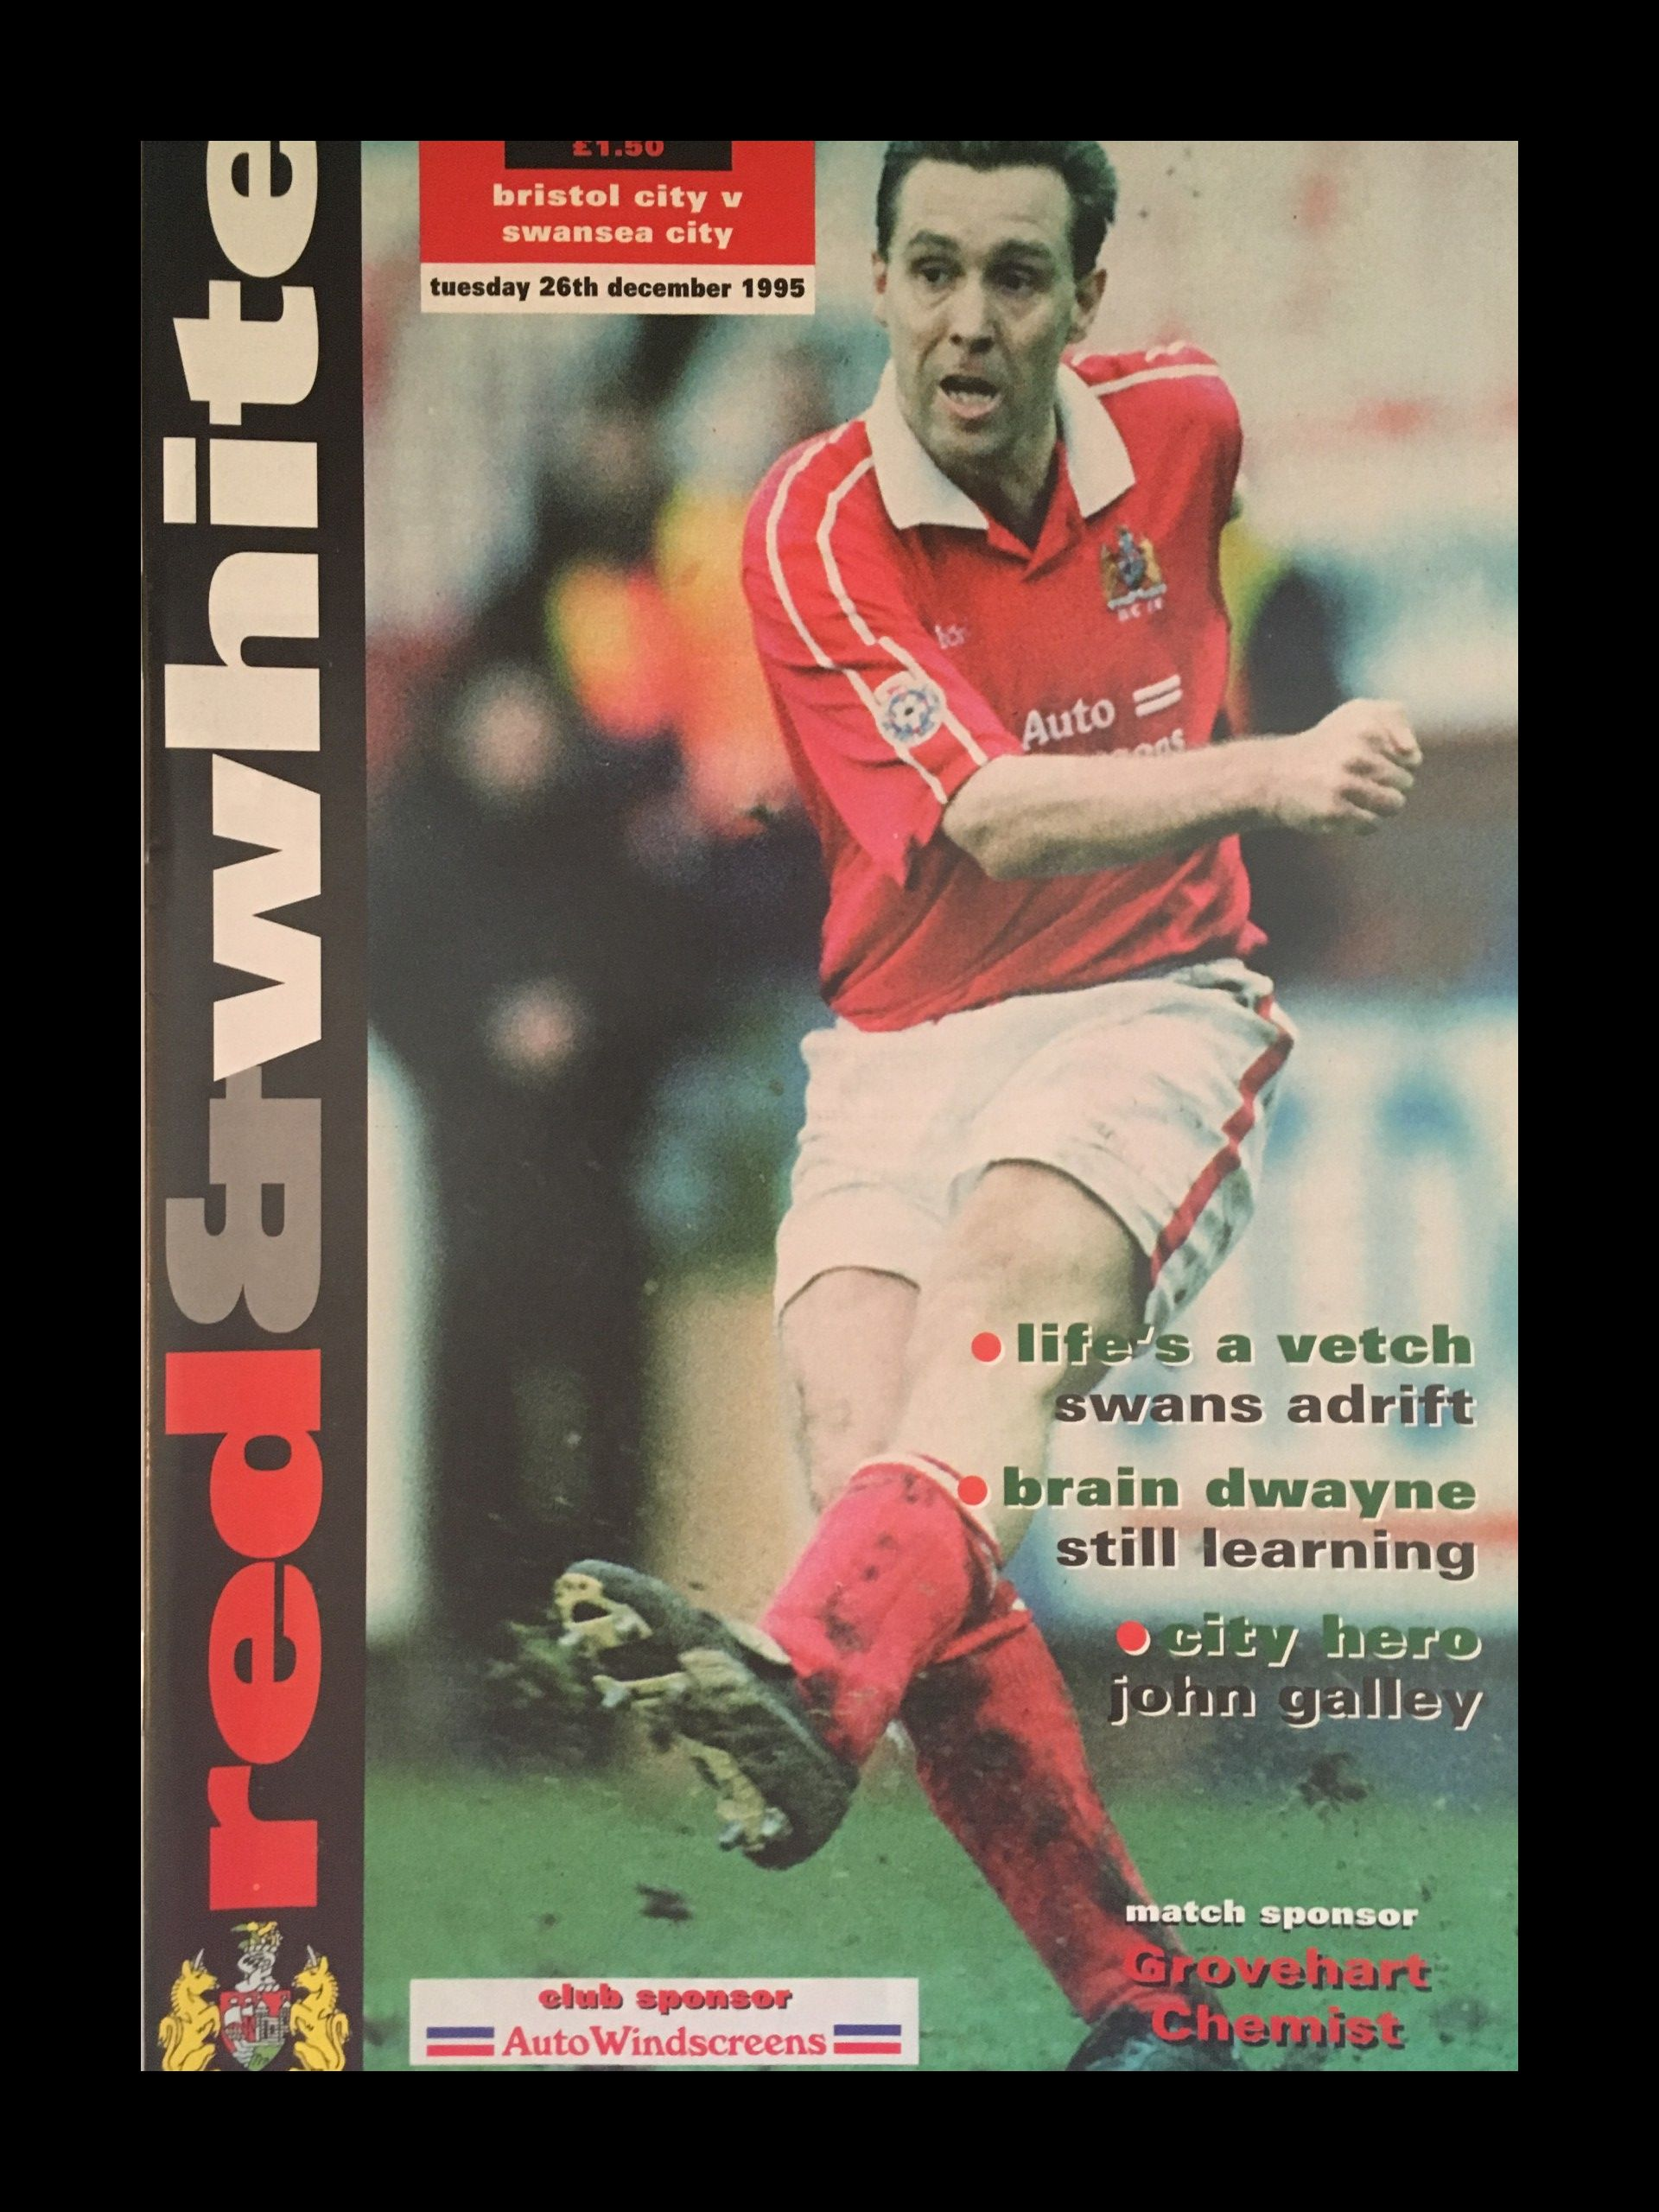 Bristol City v Swansea City 26-12-1995 Programme